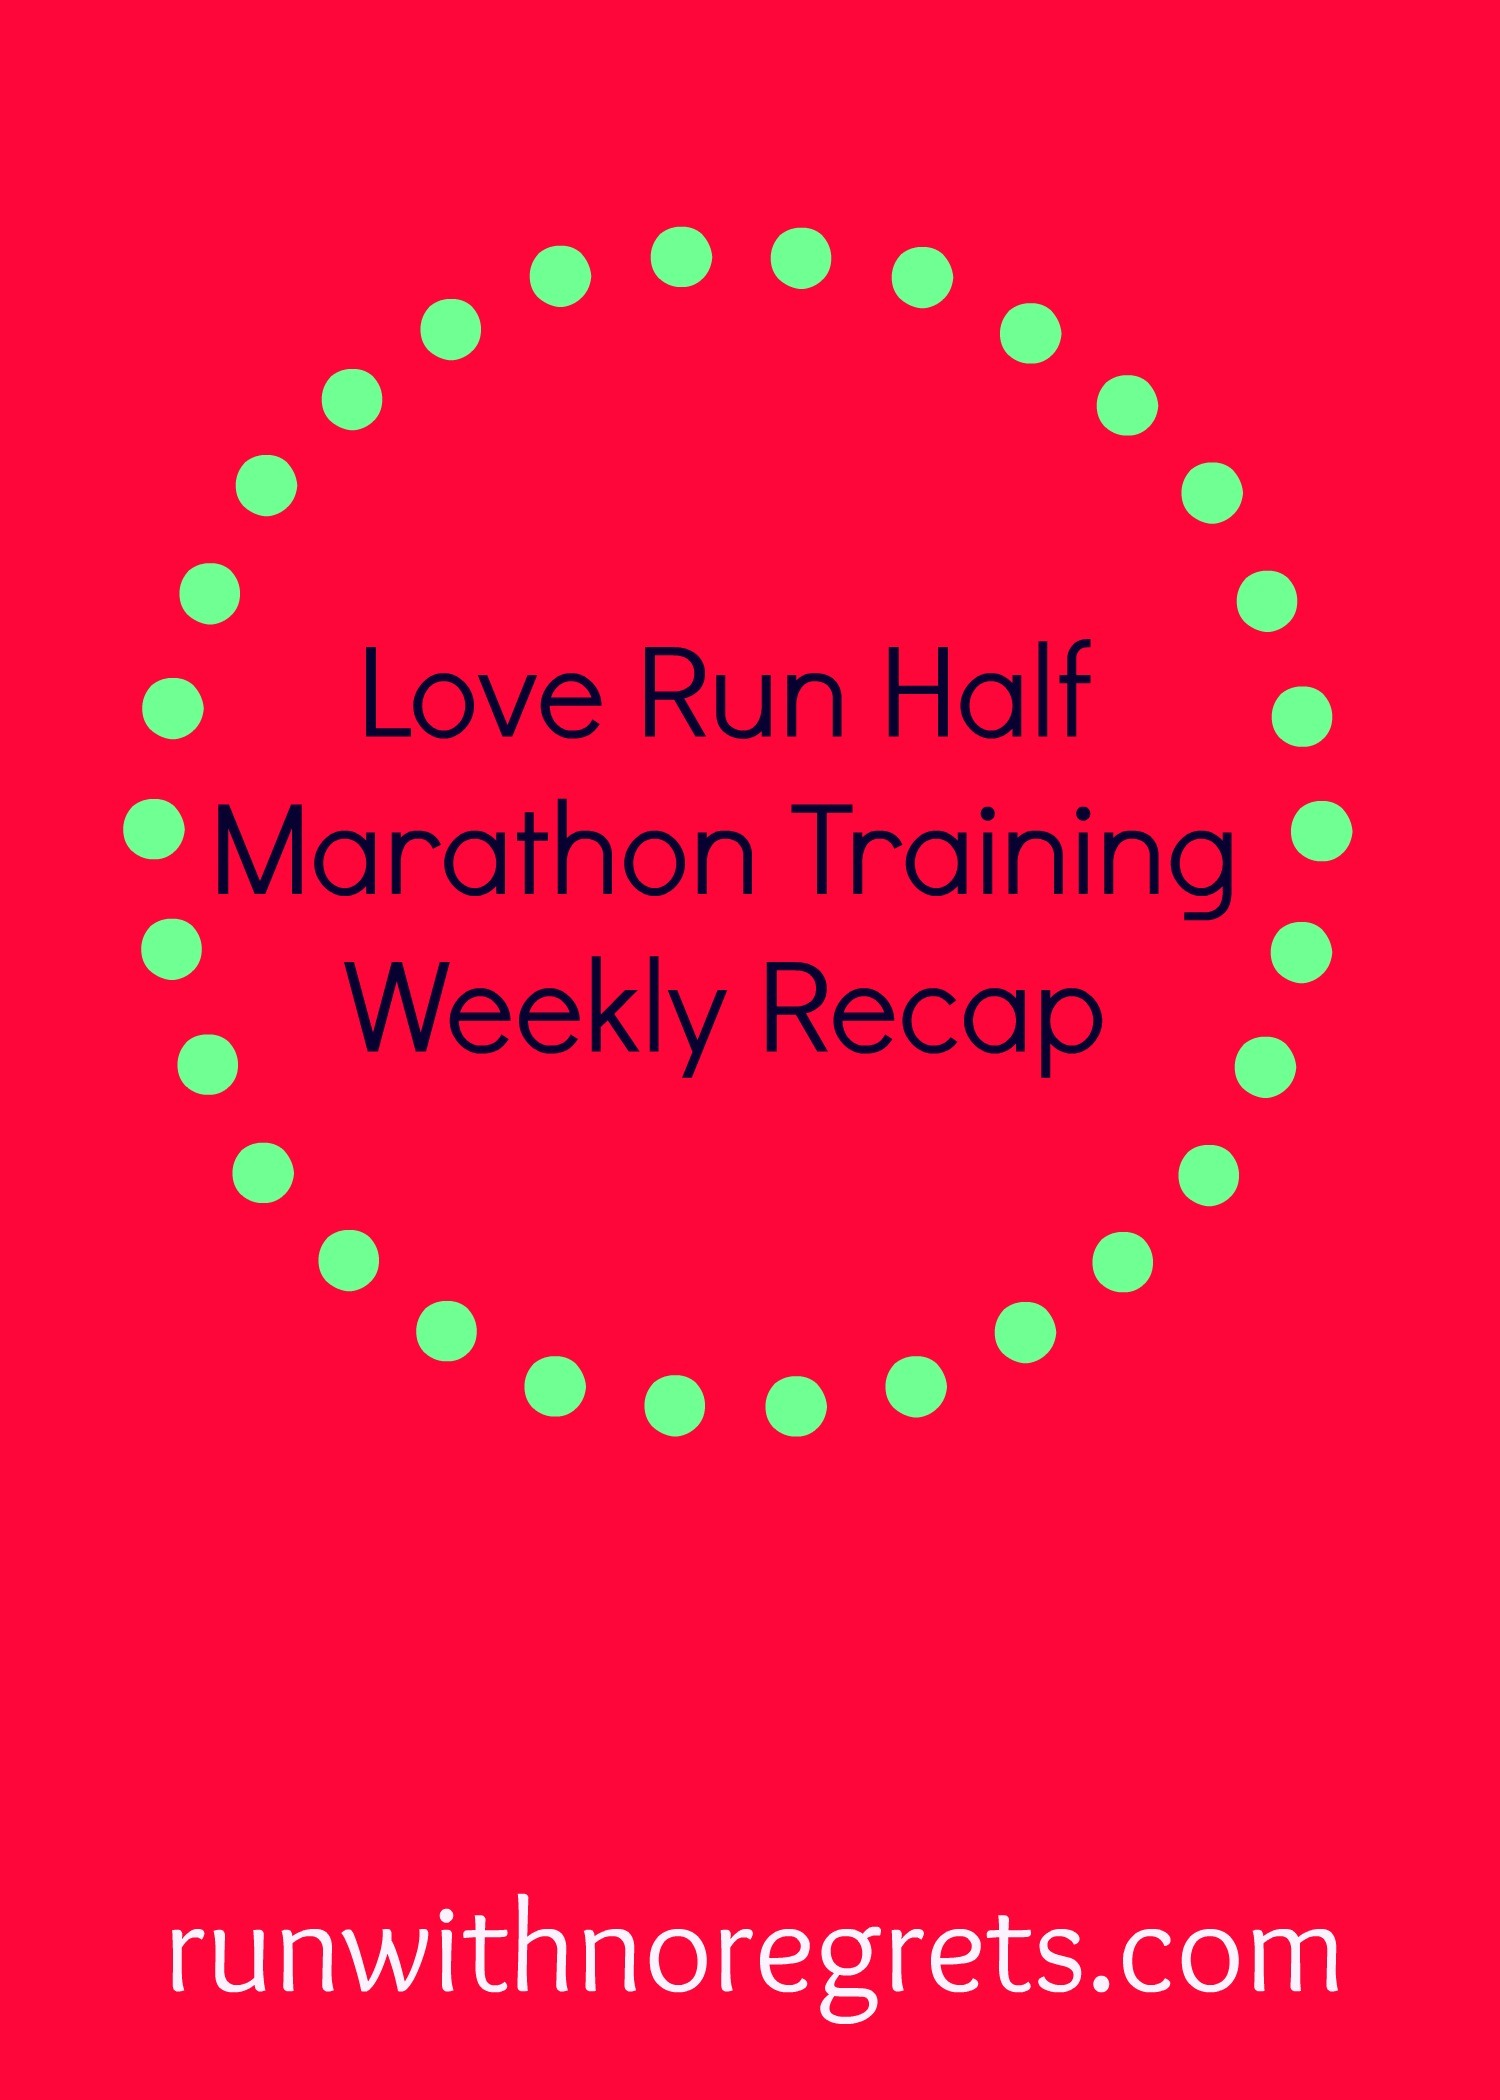 Over the next several weeks I'll be training for the Love Run Half Marathon in Philly on March 26, 2017! Check out my weekly training recap and more at runwithnoregrets.com!